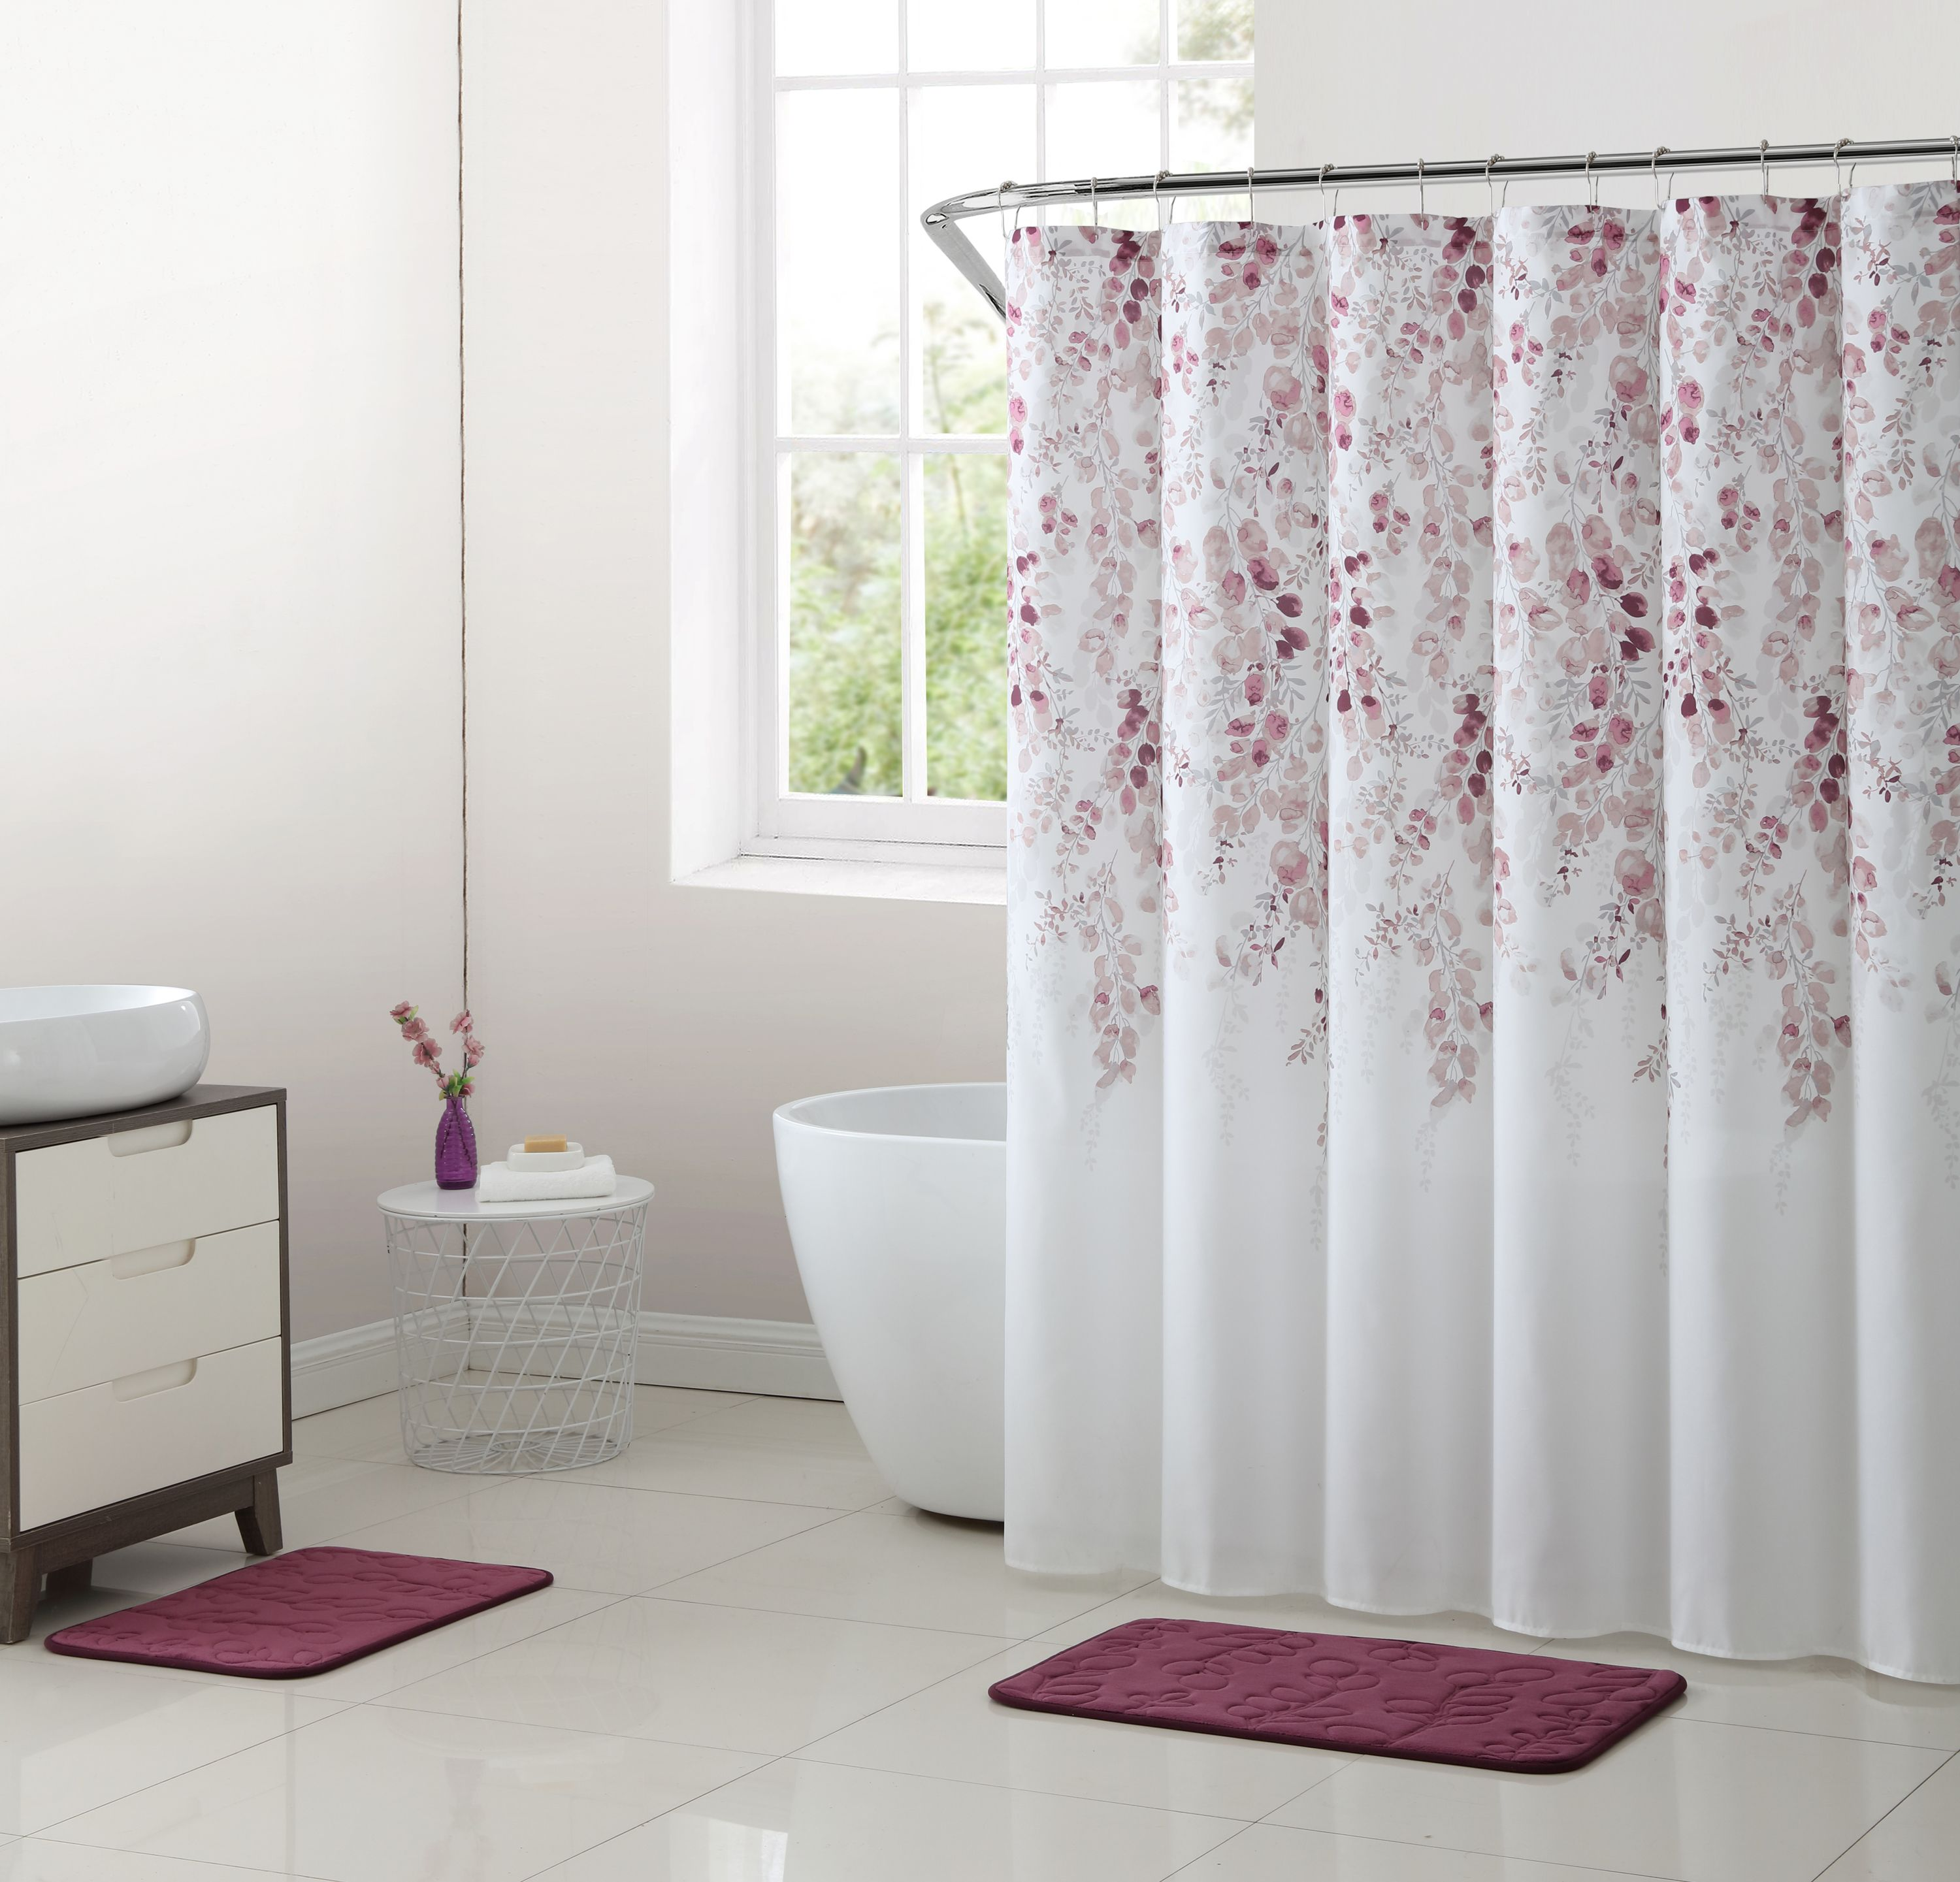 Home In 2020 With Images Shower Curtain Sets Ombre Shower